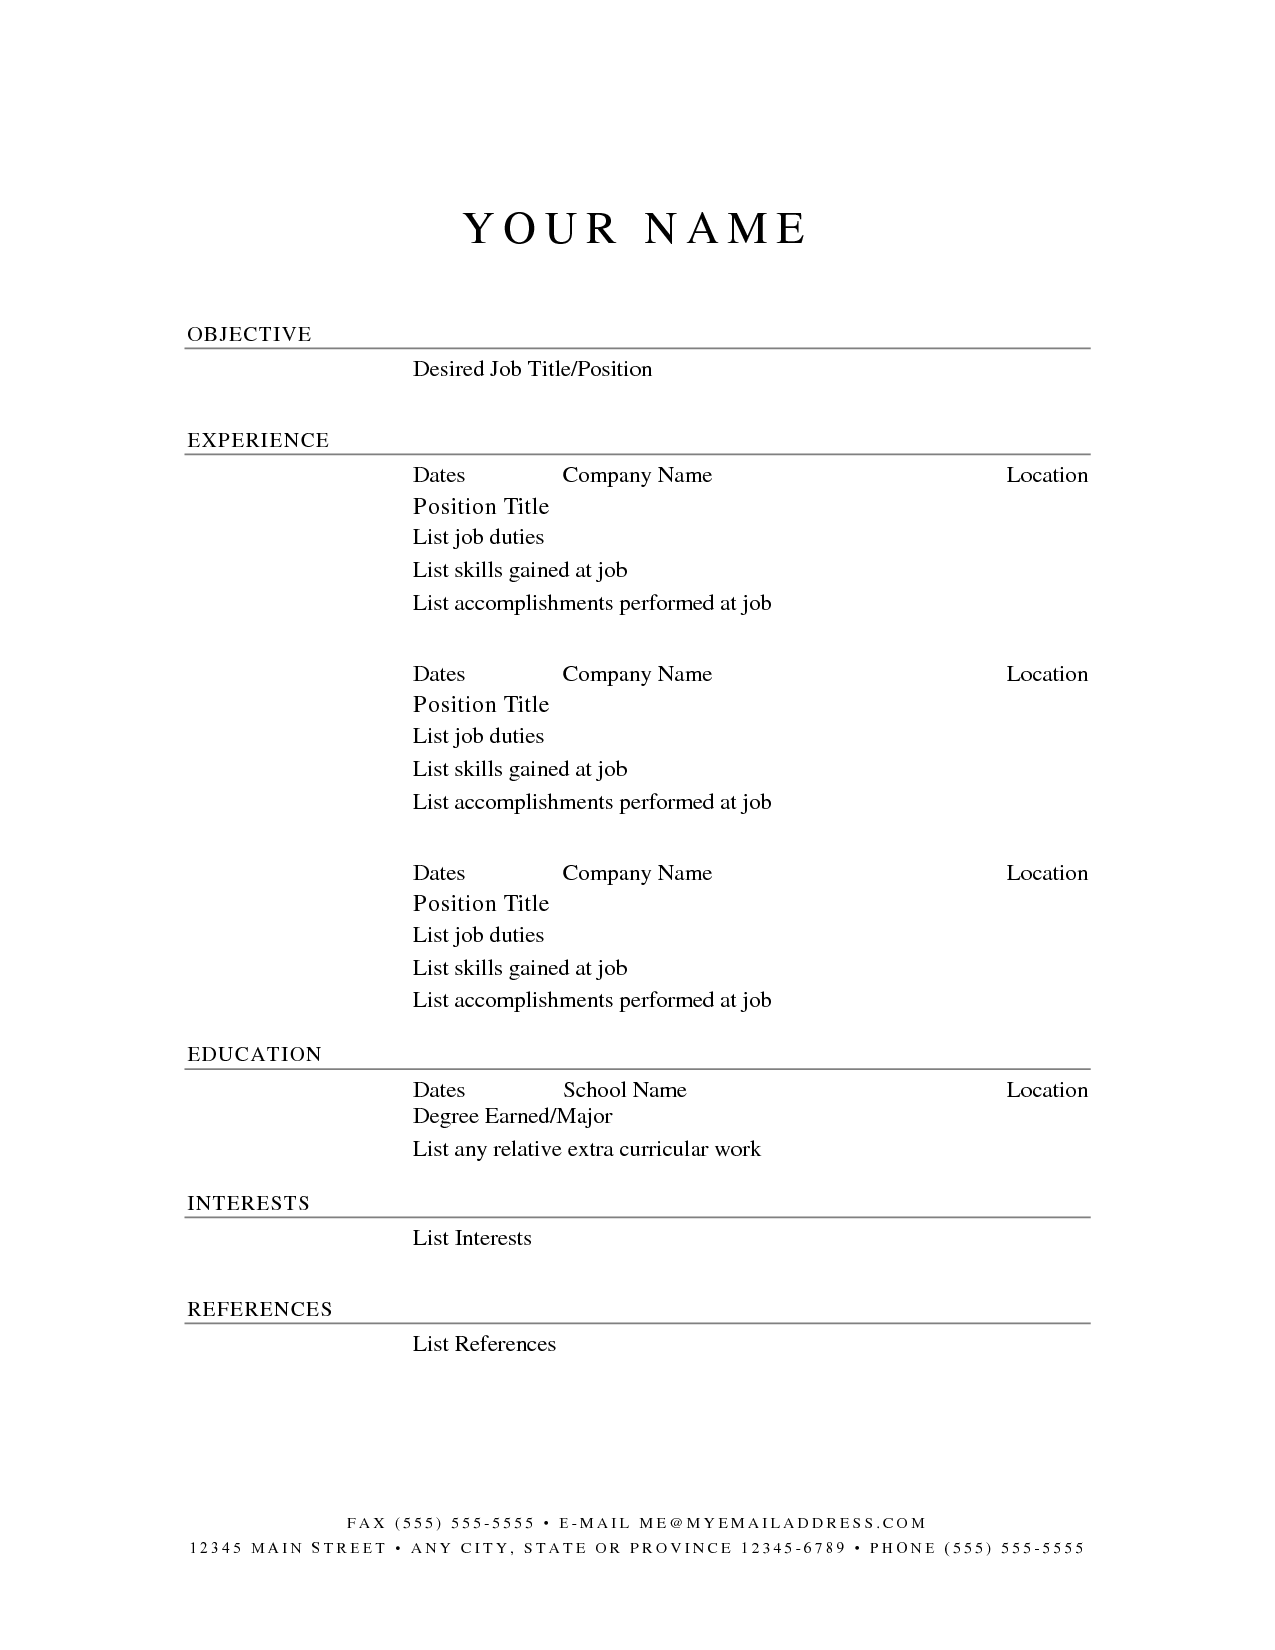 resume template online free printable - Resume Templates Free